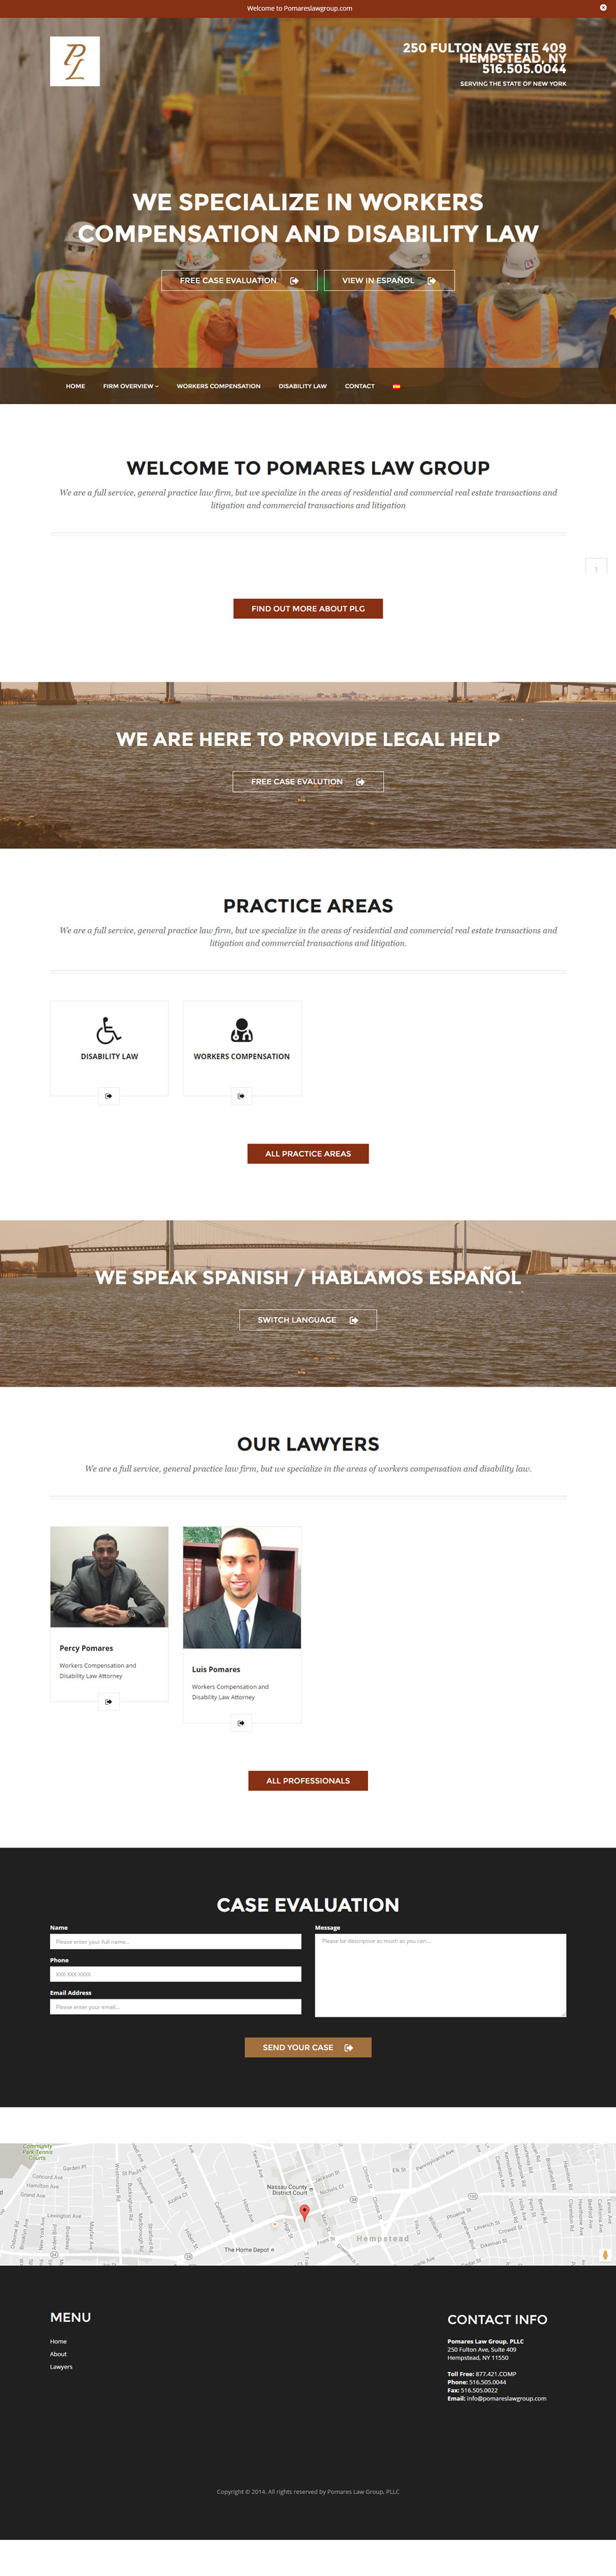 Portfolio, Pomares Law Group, Checo Designs